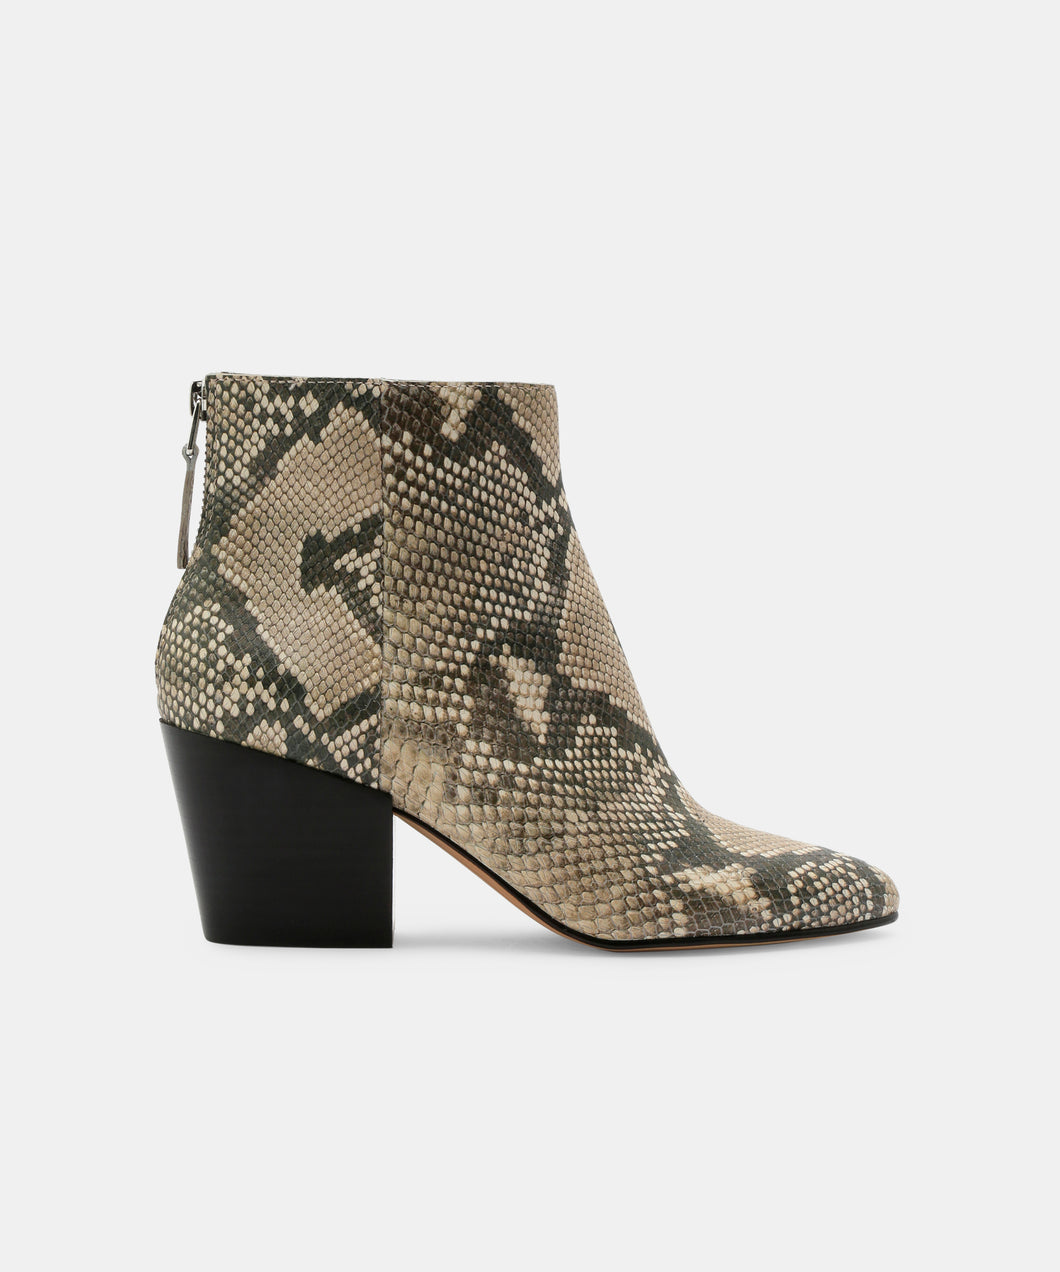 COLTYN BOOTIES SNAKE -   Dolce Vita